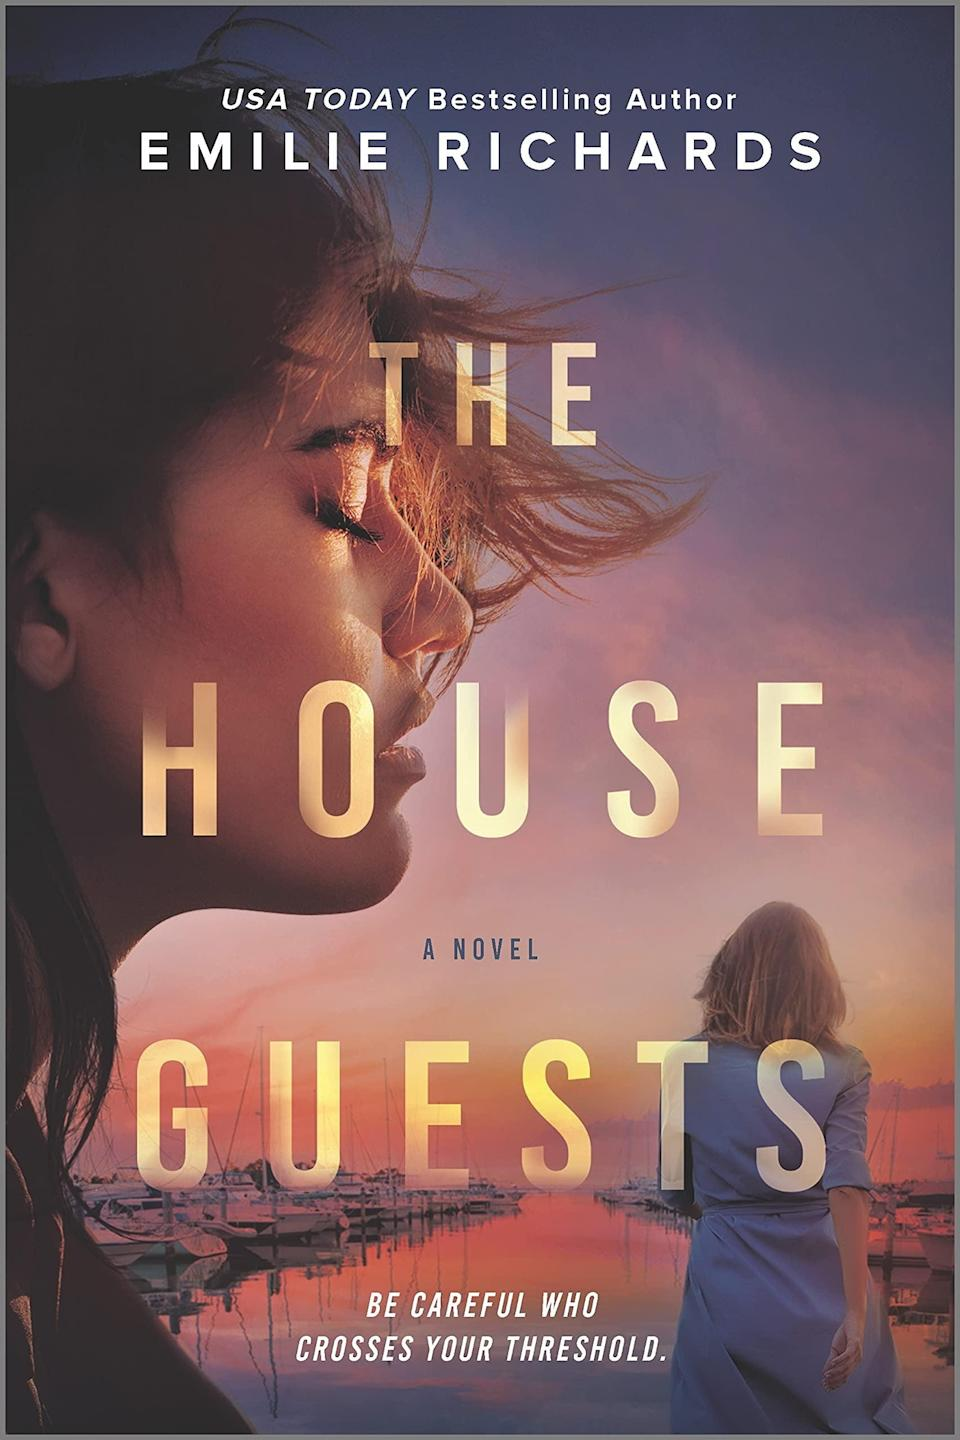 <p>The lives of two women grappling with their pasts intersect in <span><strong>The House Guests</strong></span> by Emilie Richards. After her stepdaughter's reckless actions leave a mother, Amber, and her son homeless, Cassie invites them to move into her home. However, it doesn't take long for her to realize Amber has secrets she's trying to hide. </p> <p><em>Out June 29</em></p>